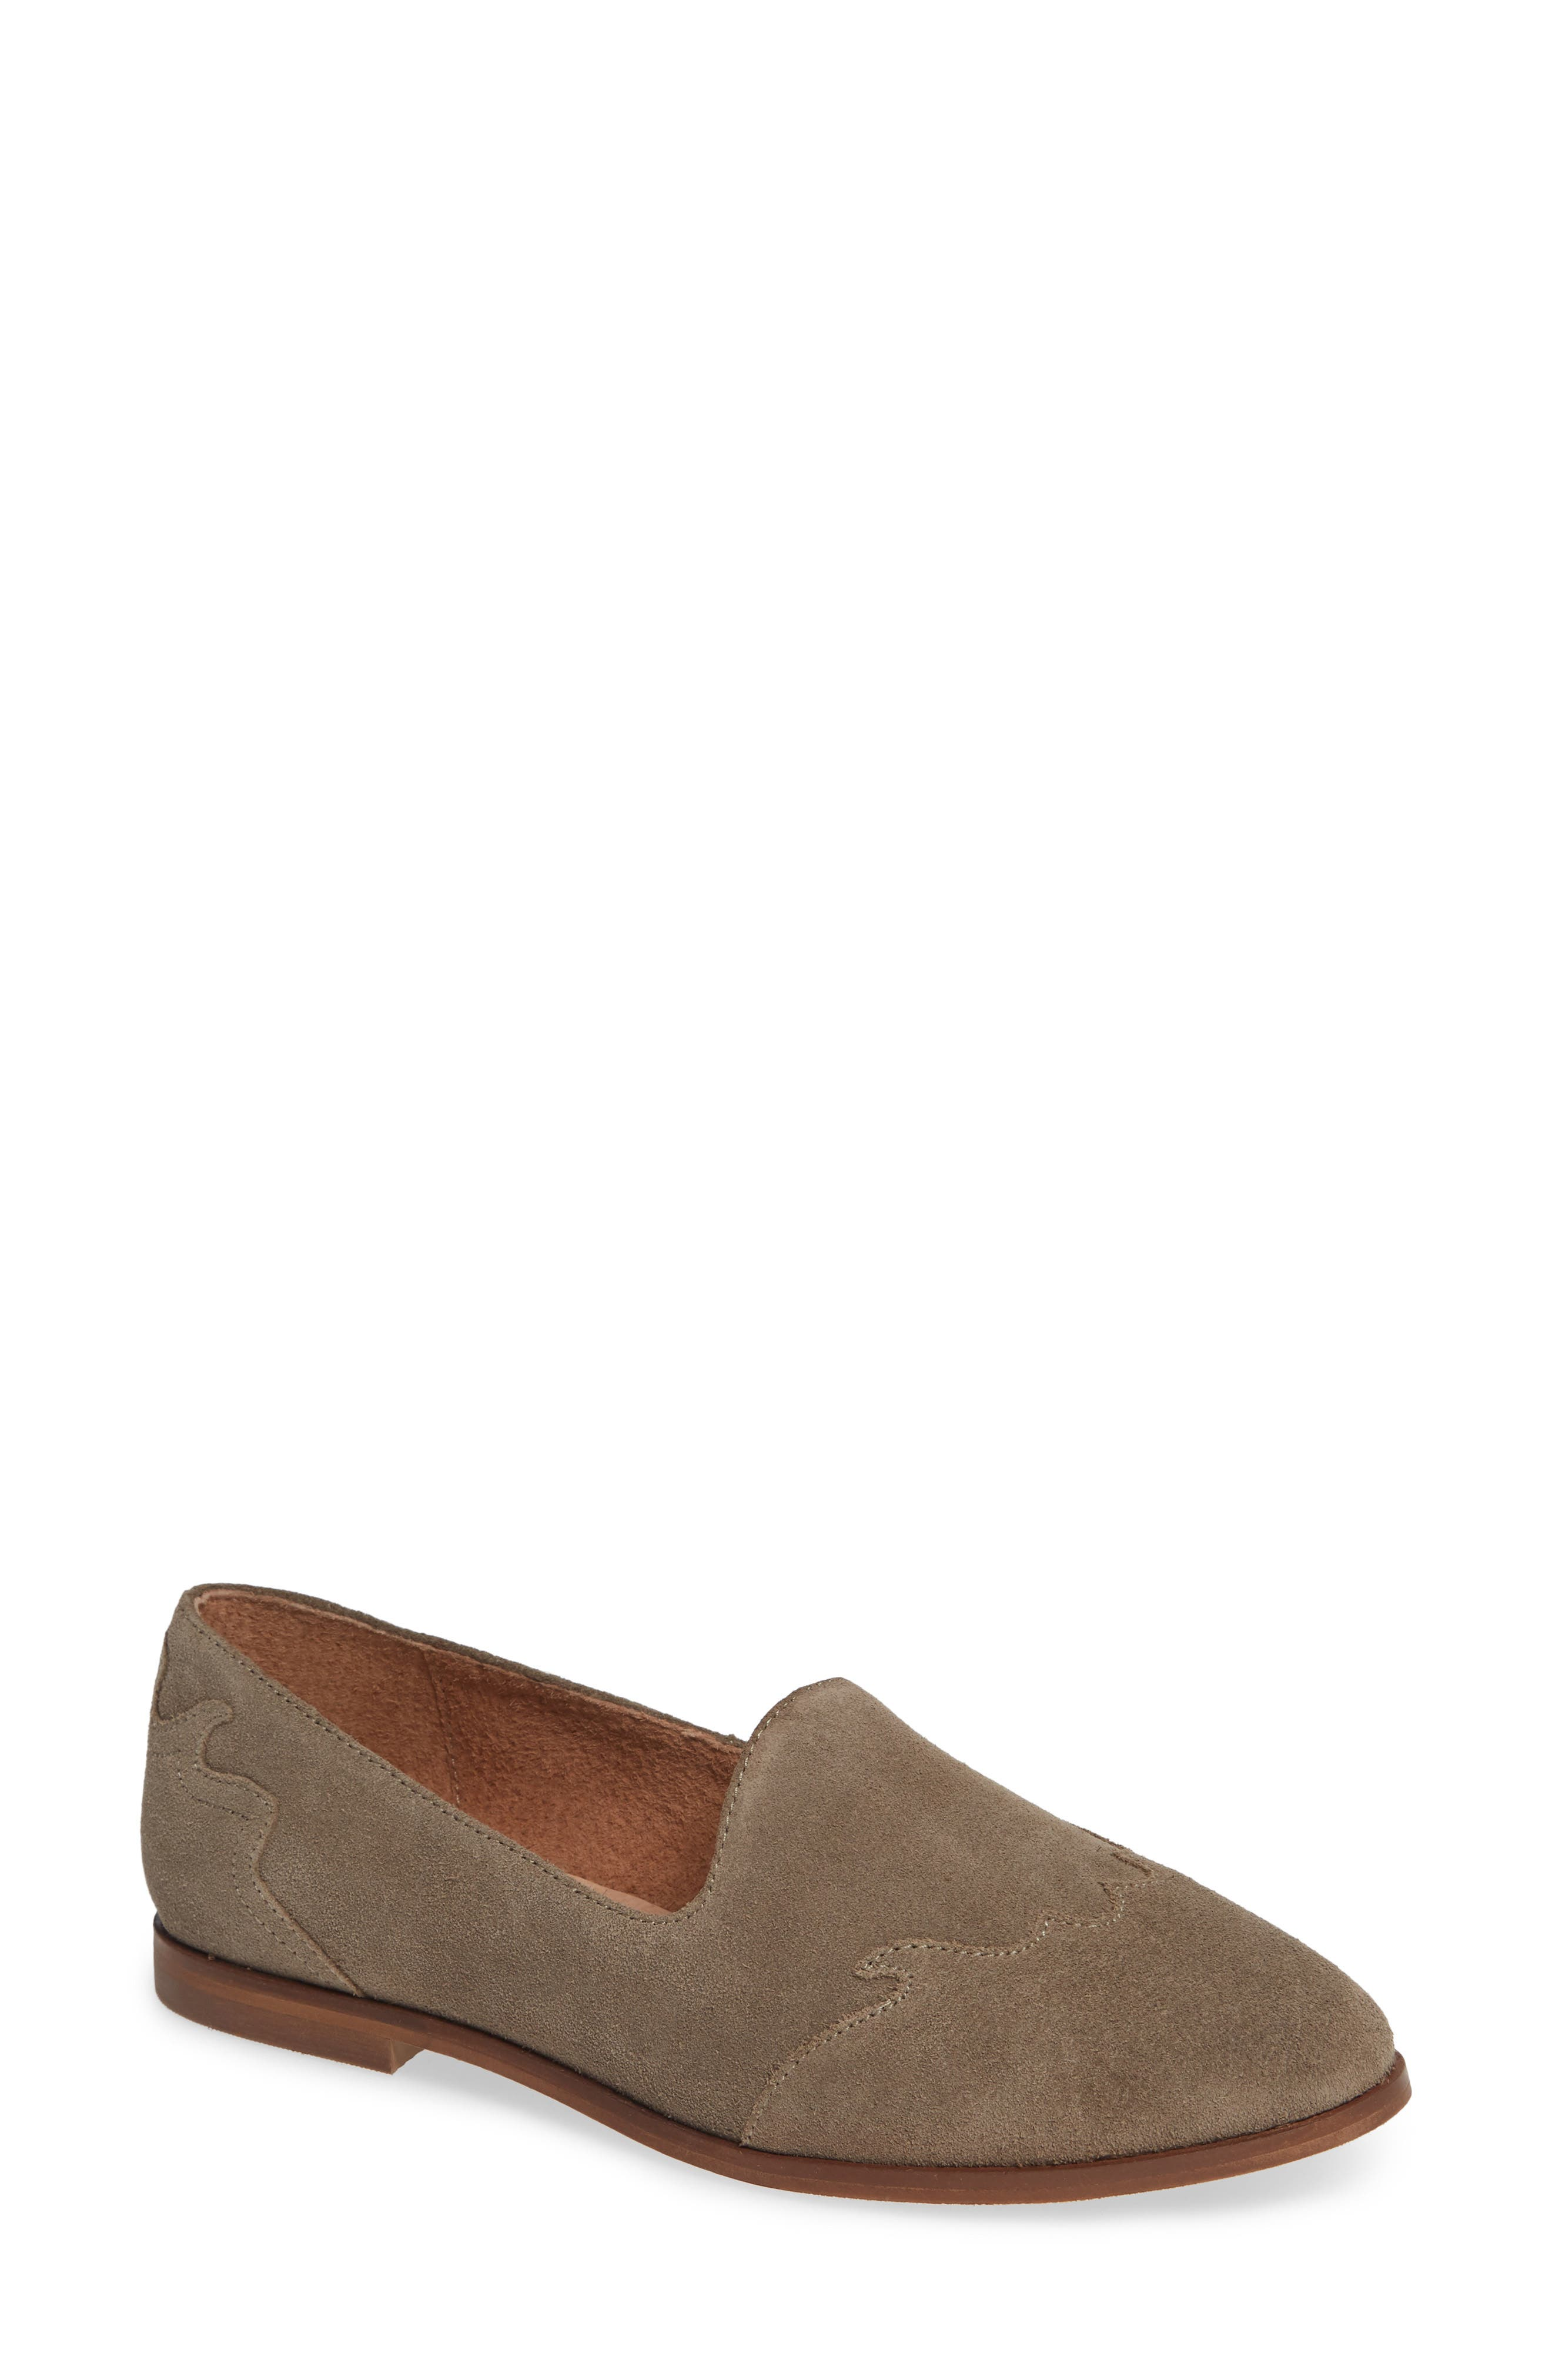 Revolution Loafer,                             Main thumbnail 1, color,                             TAUPE SUEDE